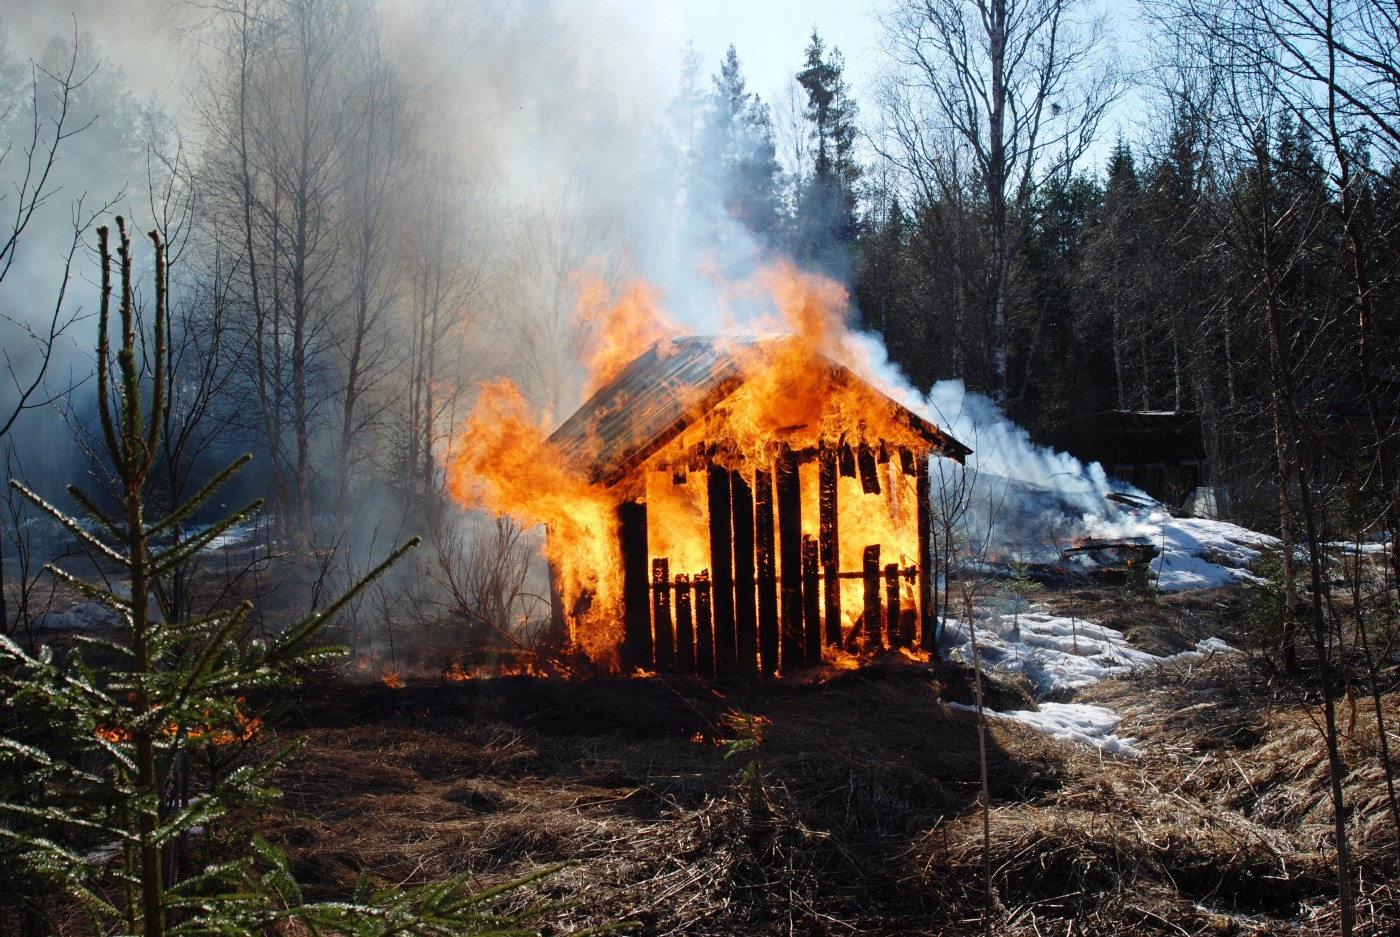 Burning hut in the forest.